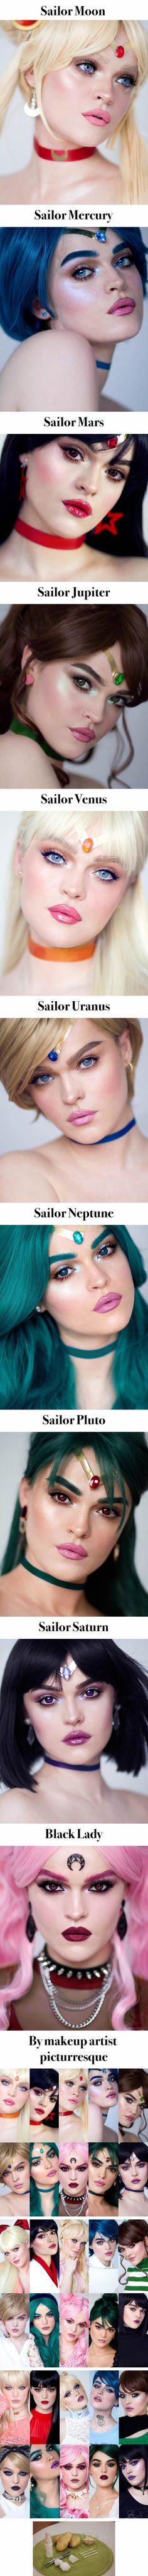 Makeup artist does up every single Sailor Senshi from Sailor Moon. Sailor Saturn is my fav (Diy Costume Makeup)